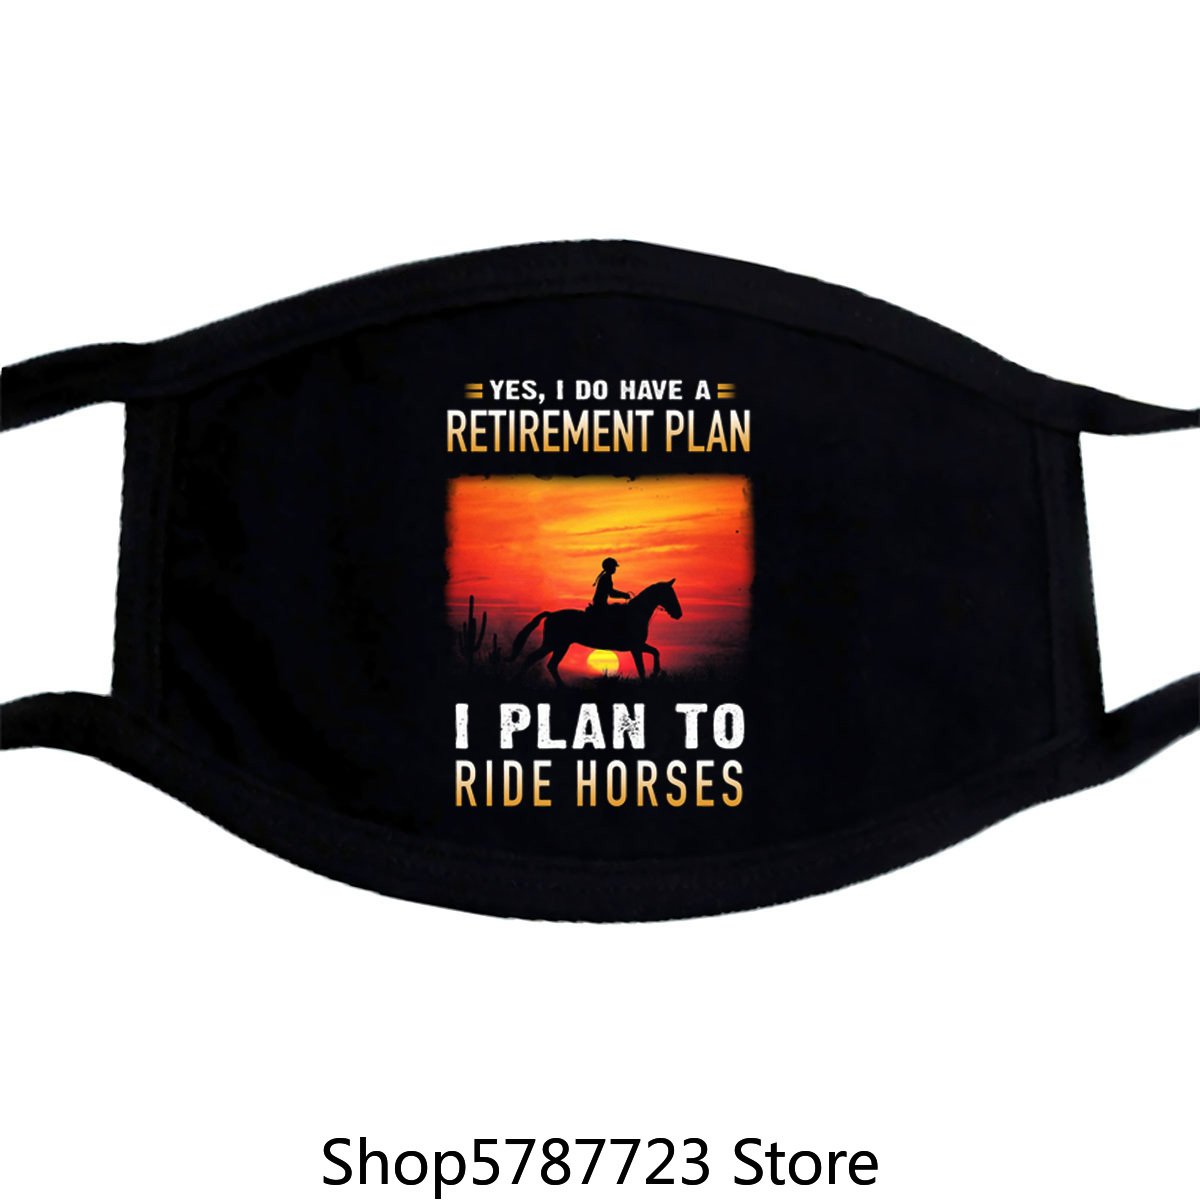 Yes I Do Have A Retirement Plan I Plan To Ride Horses Mask image